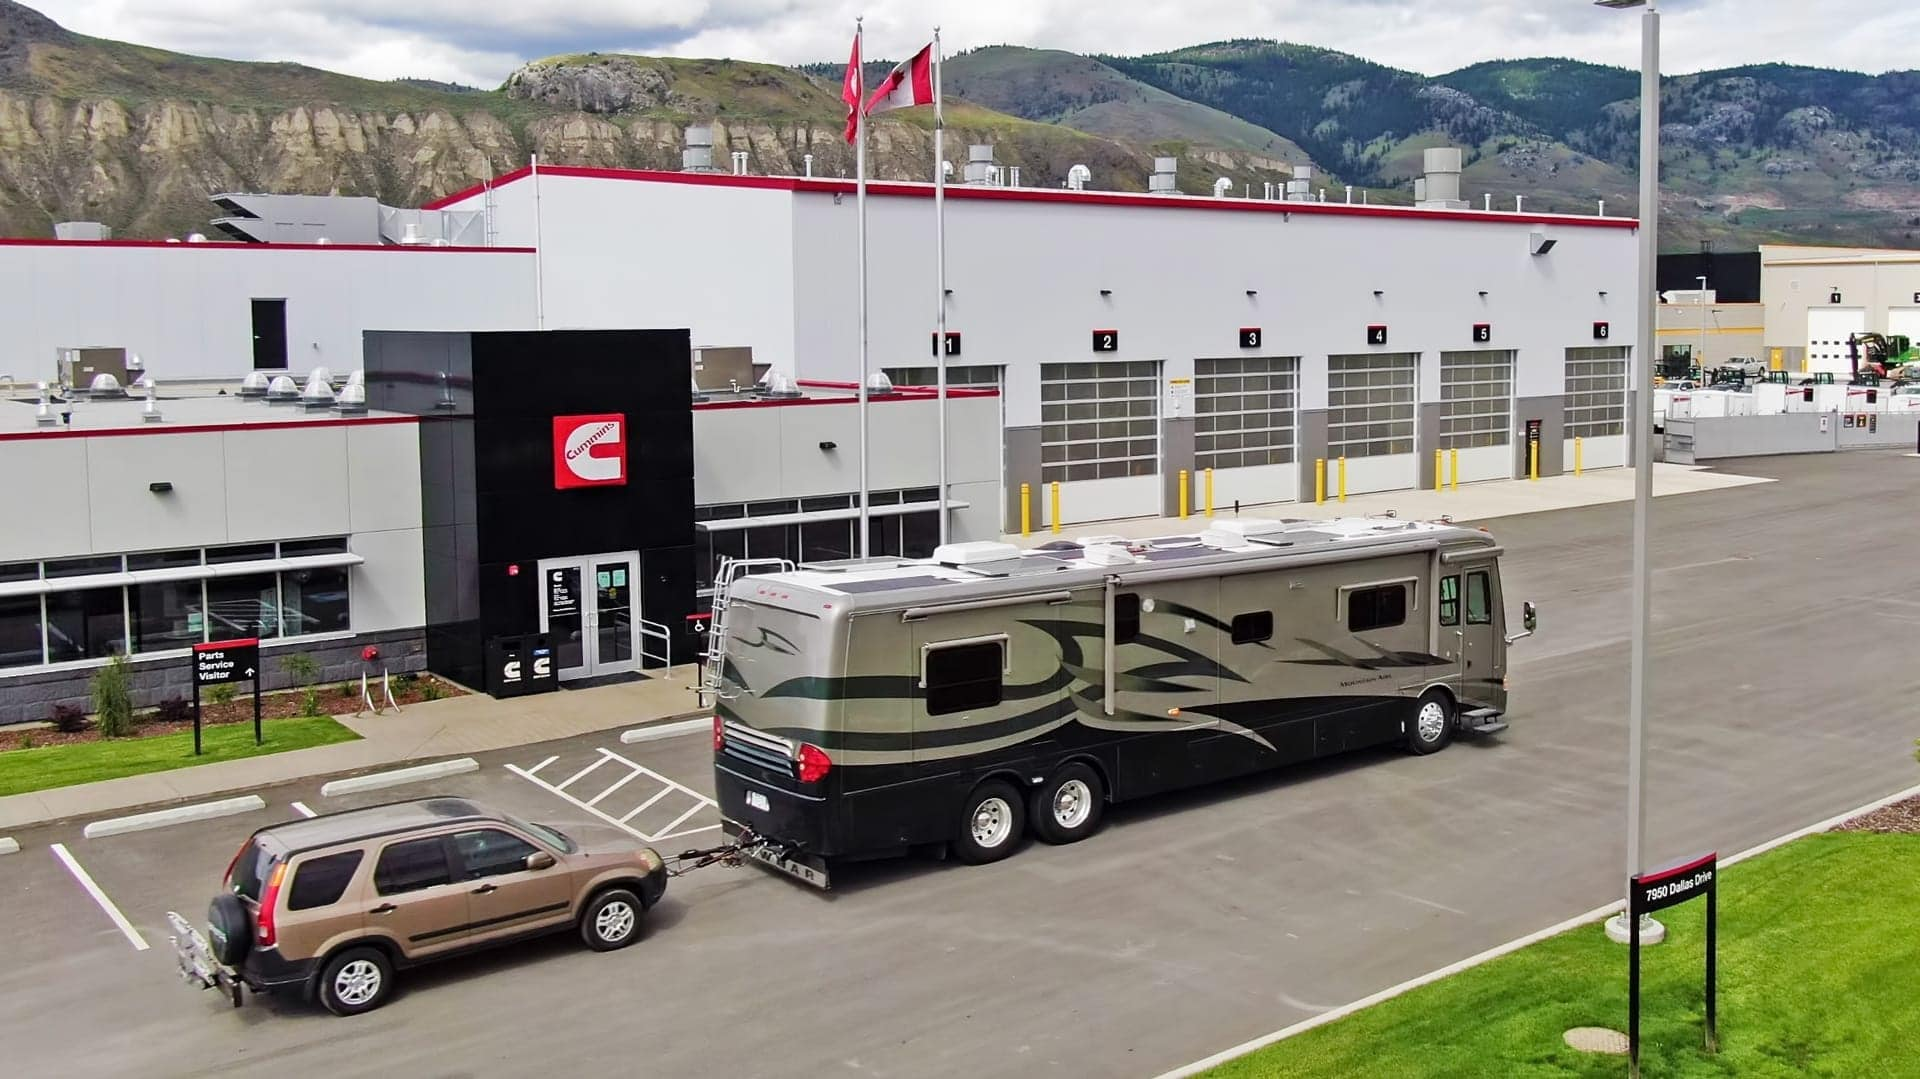 Our RV in front of Cummins Coach Care in Kamloops, BC